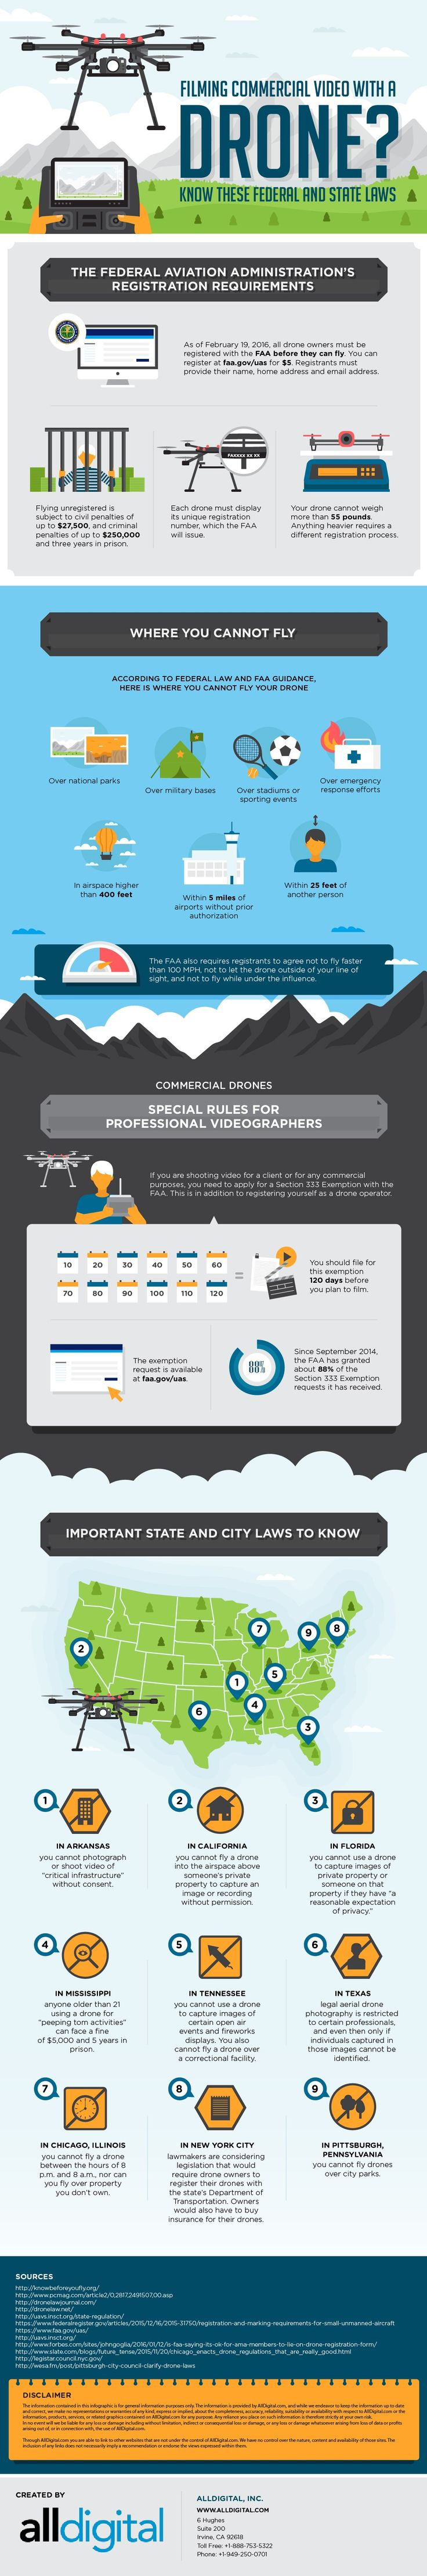 Drone shooting laws infographic